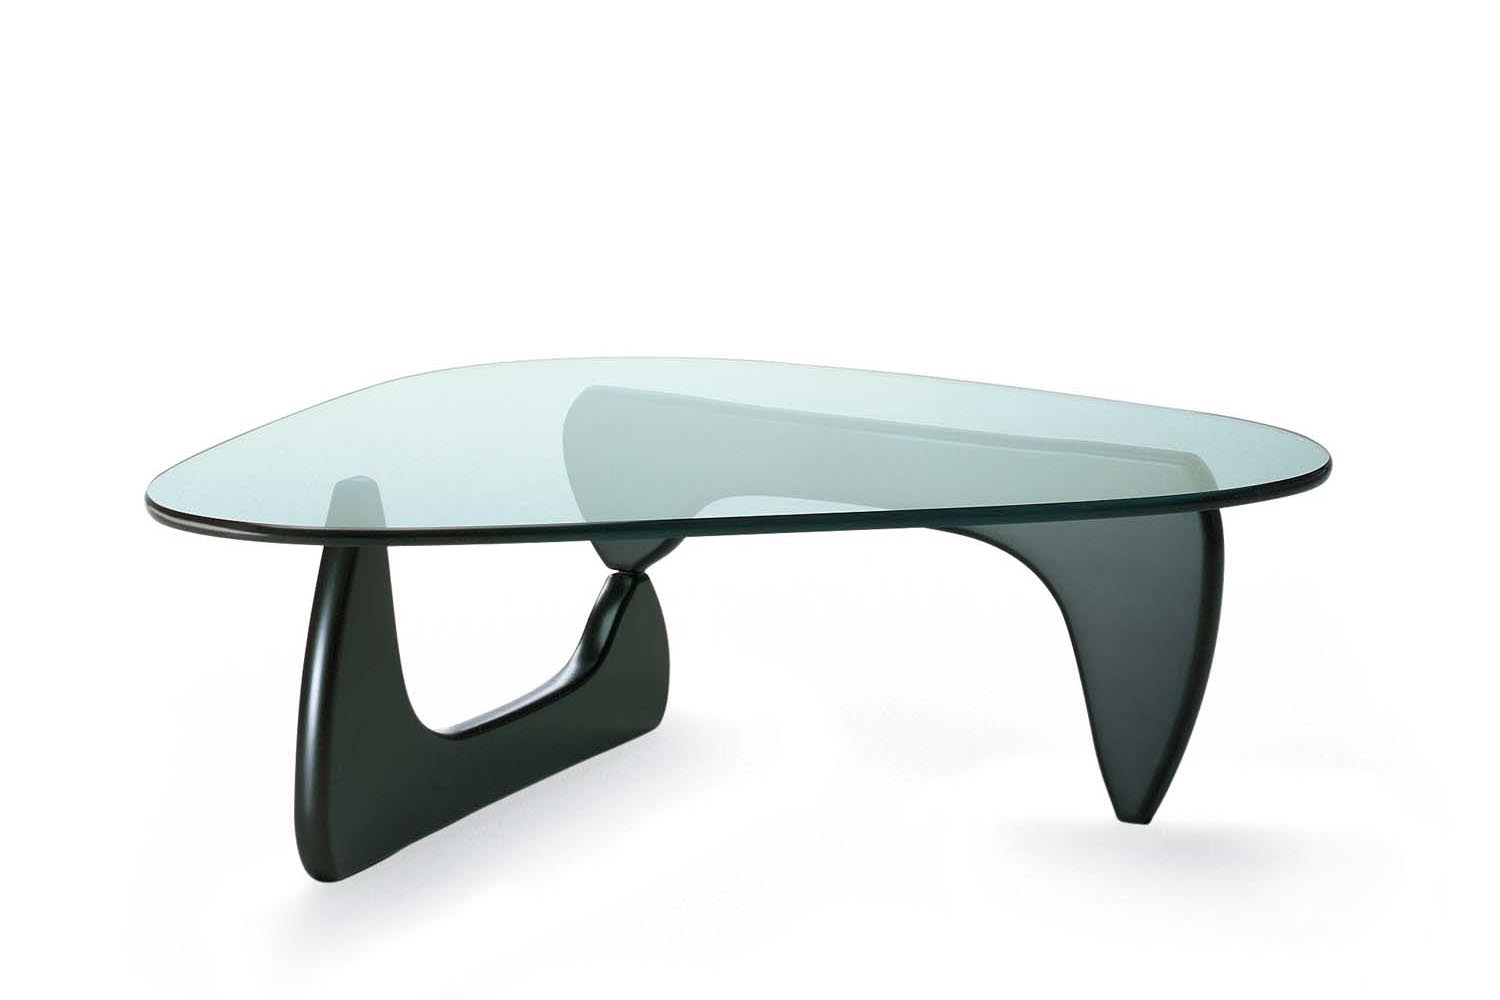 Noguchi Coffee Table Black Ash by Isamu Noguchi for Vitra Space